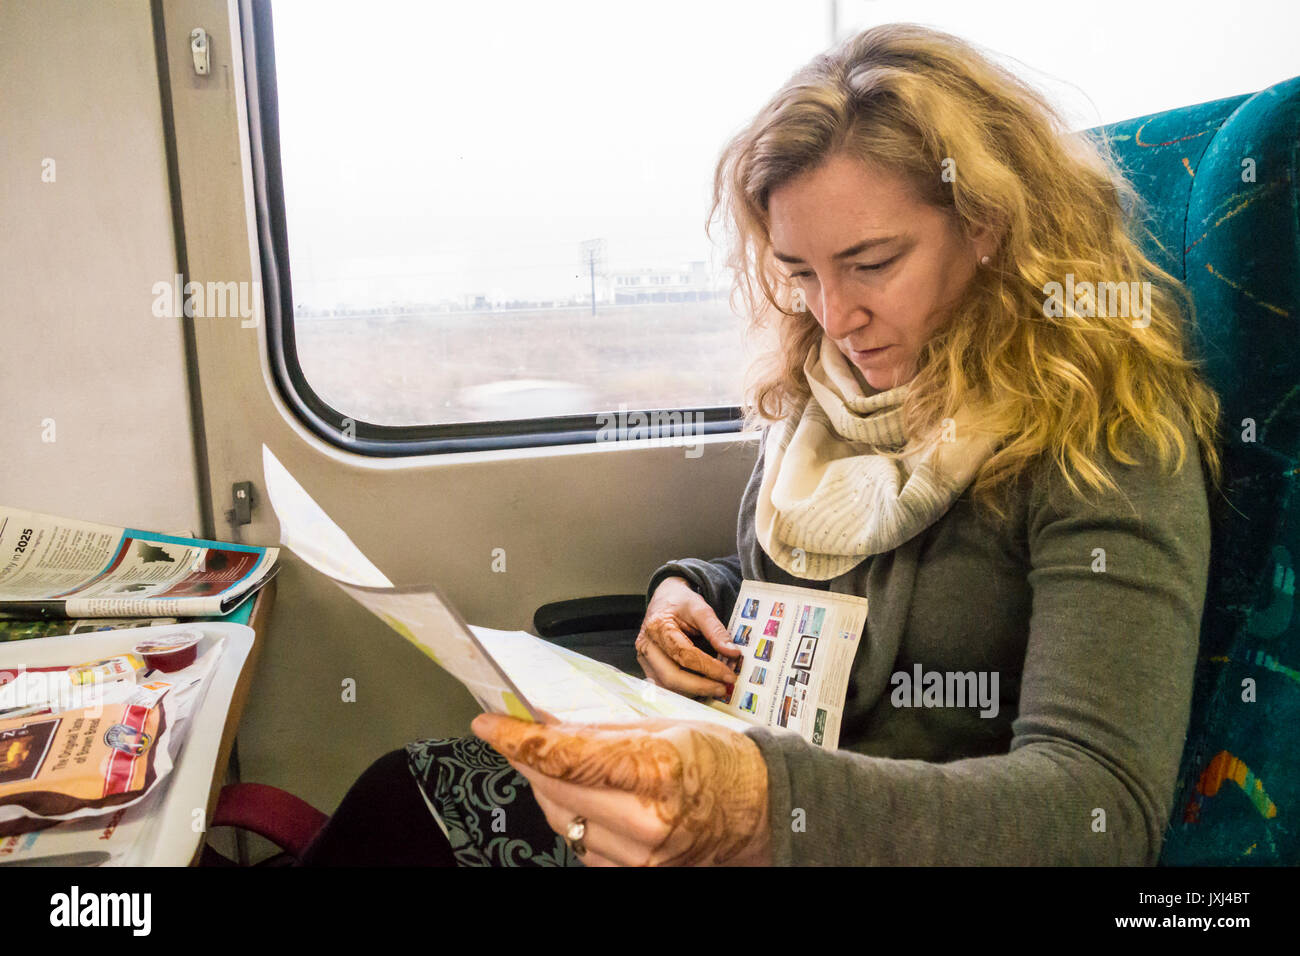 A woman on a train between Dehli and Agra India studying travel information and maps. - Stock Image